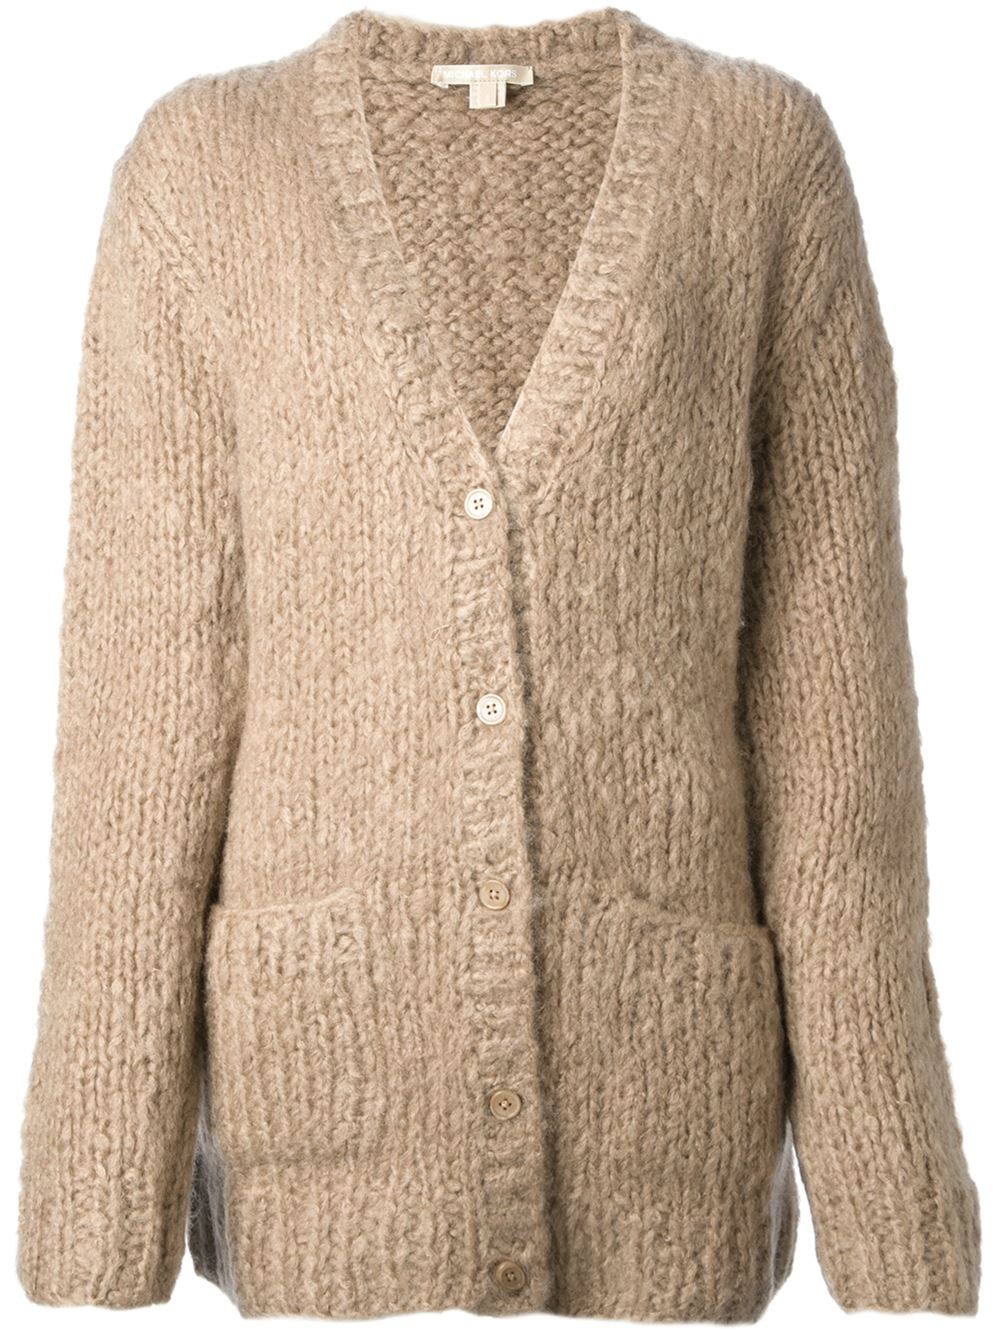 Michael kors Chunky Knit Cardigan in Natural | Lyst